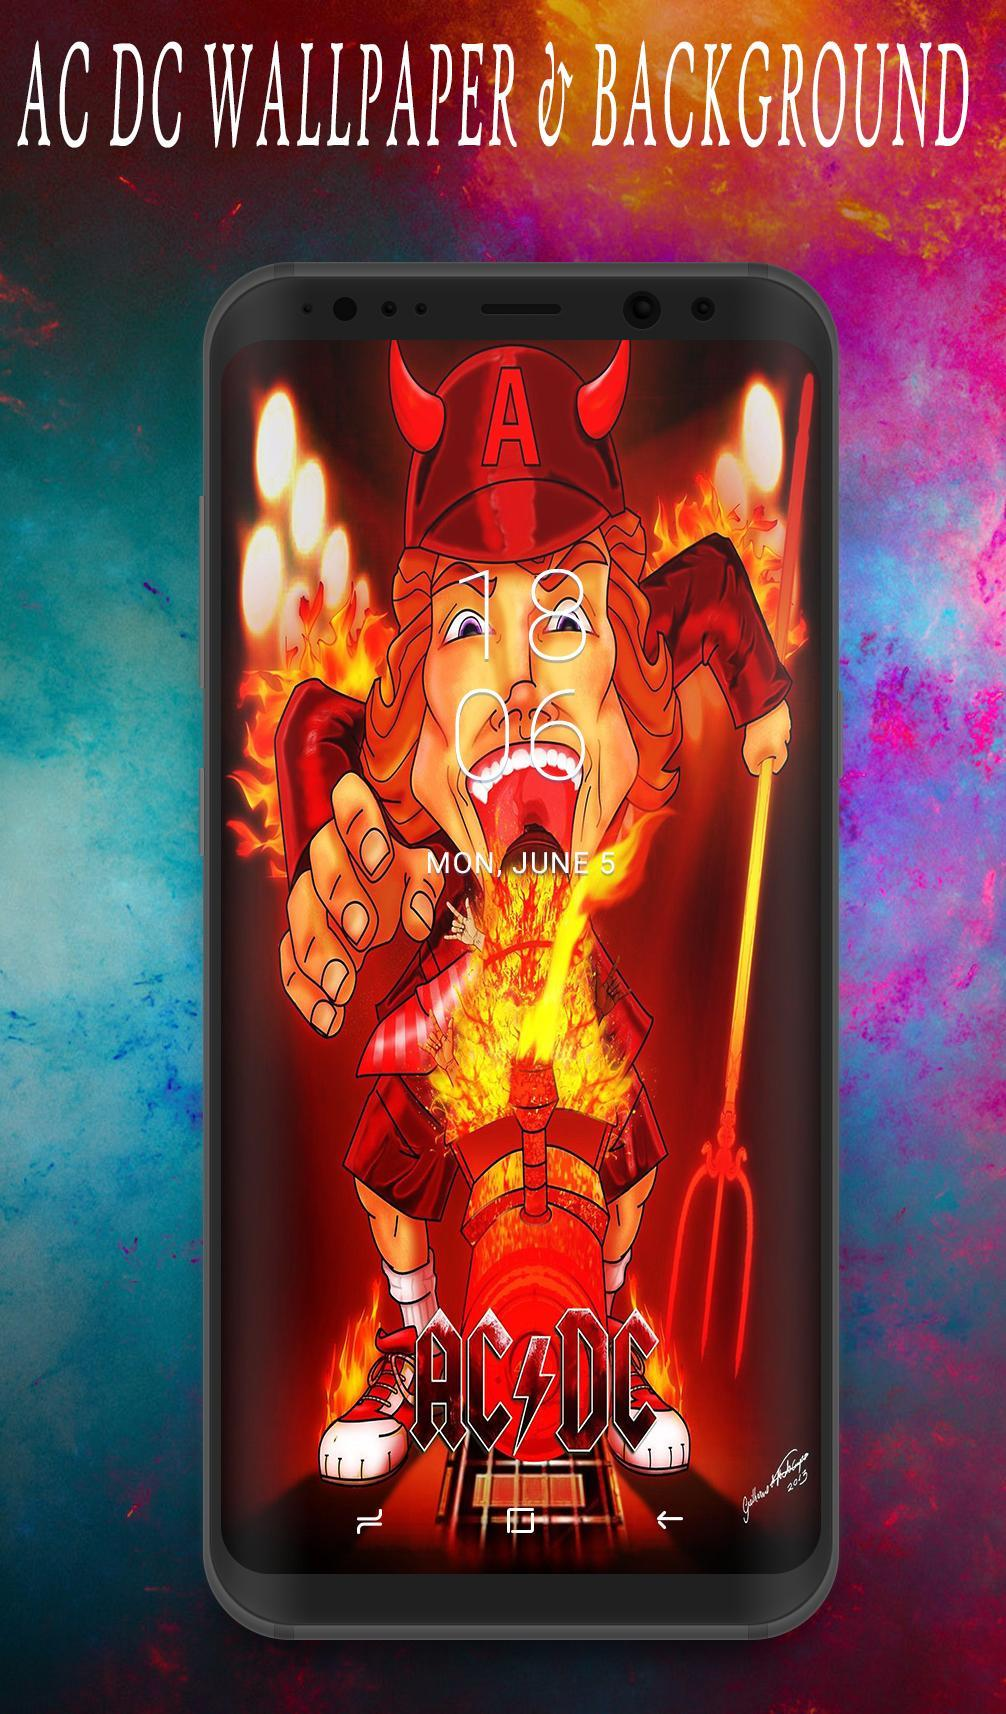 Ac Dc Wallpapers Hd For Android Apk Download